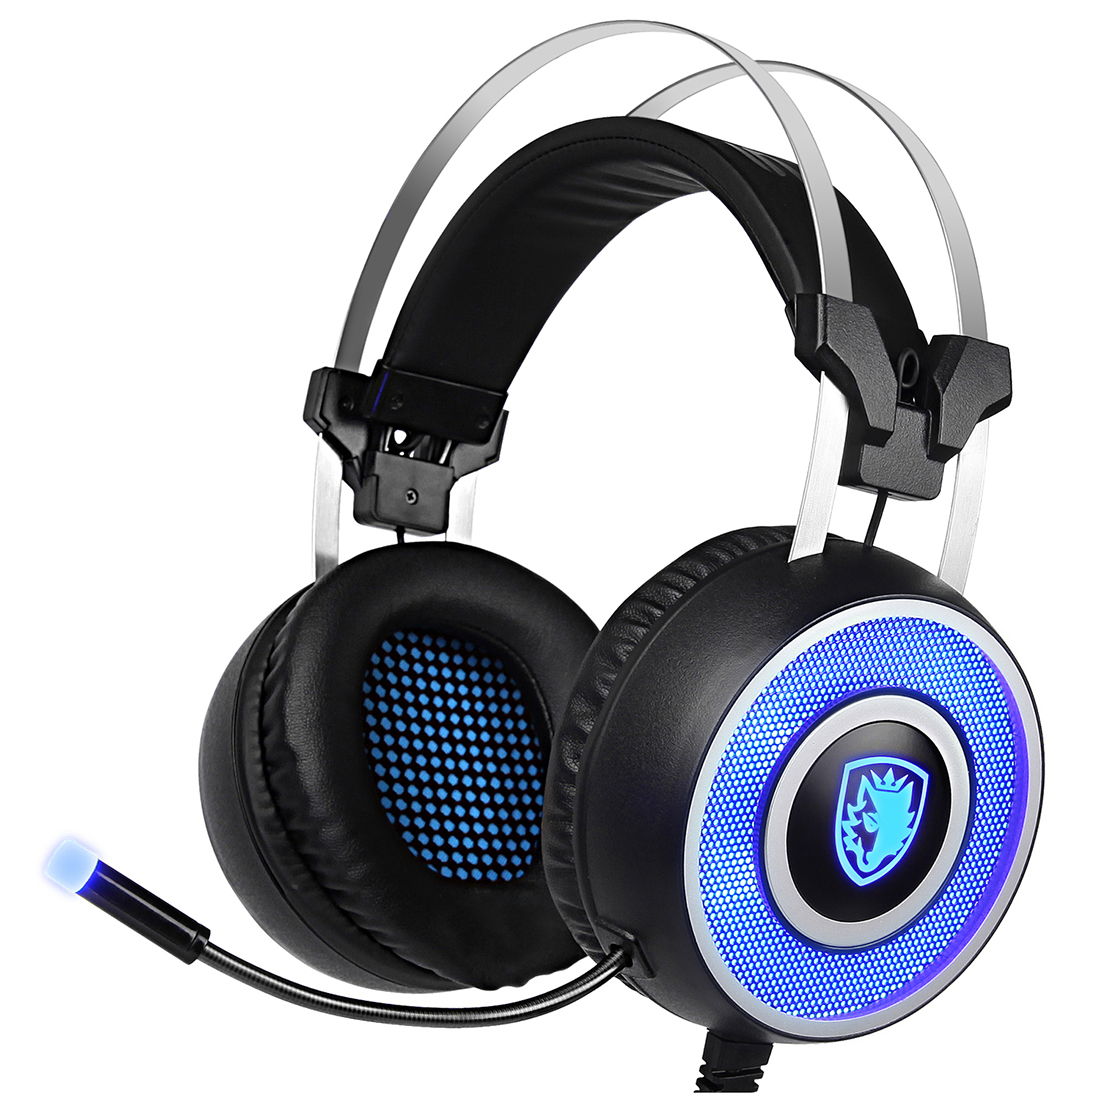 SADES A9 Gaming Headset,USB Over Ear Gaming Headphones with miniphone ,7 colors Breathing LED Lighting for PC(Black and Blue) each g1100 shake e sports gaming mic led light headset headphone casque with 7 1 heavy bass surround sound for pc gamer